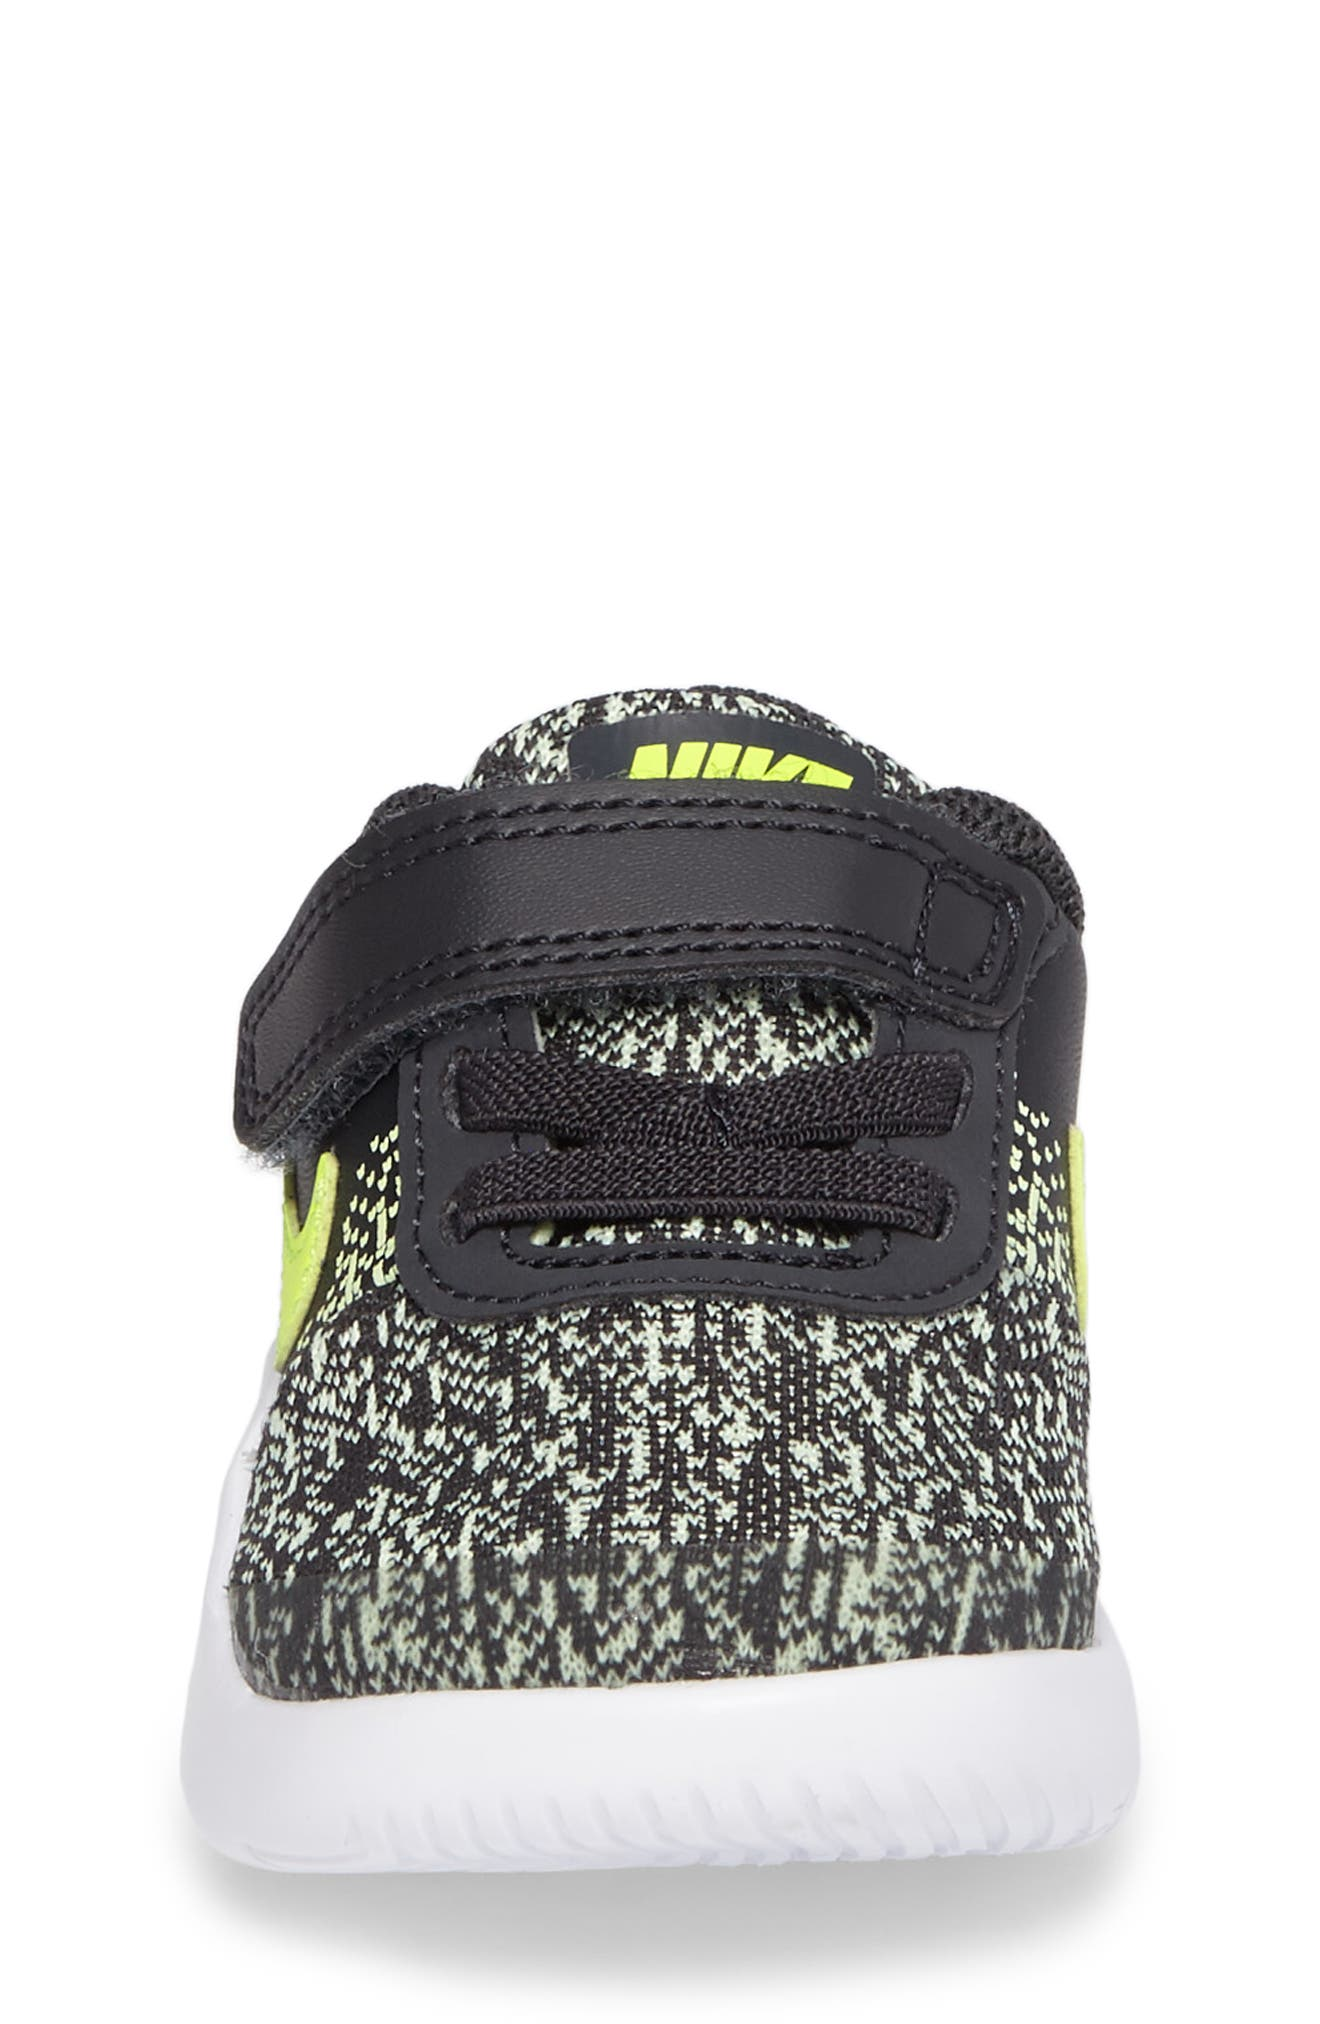 Flex Contact Sneaker,                             Alternate thumbnail 4, color,                             021